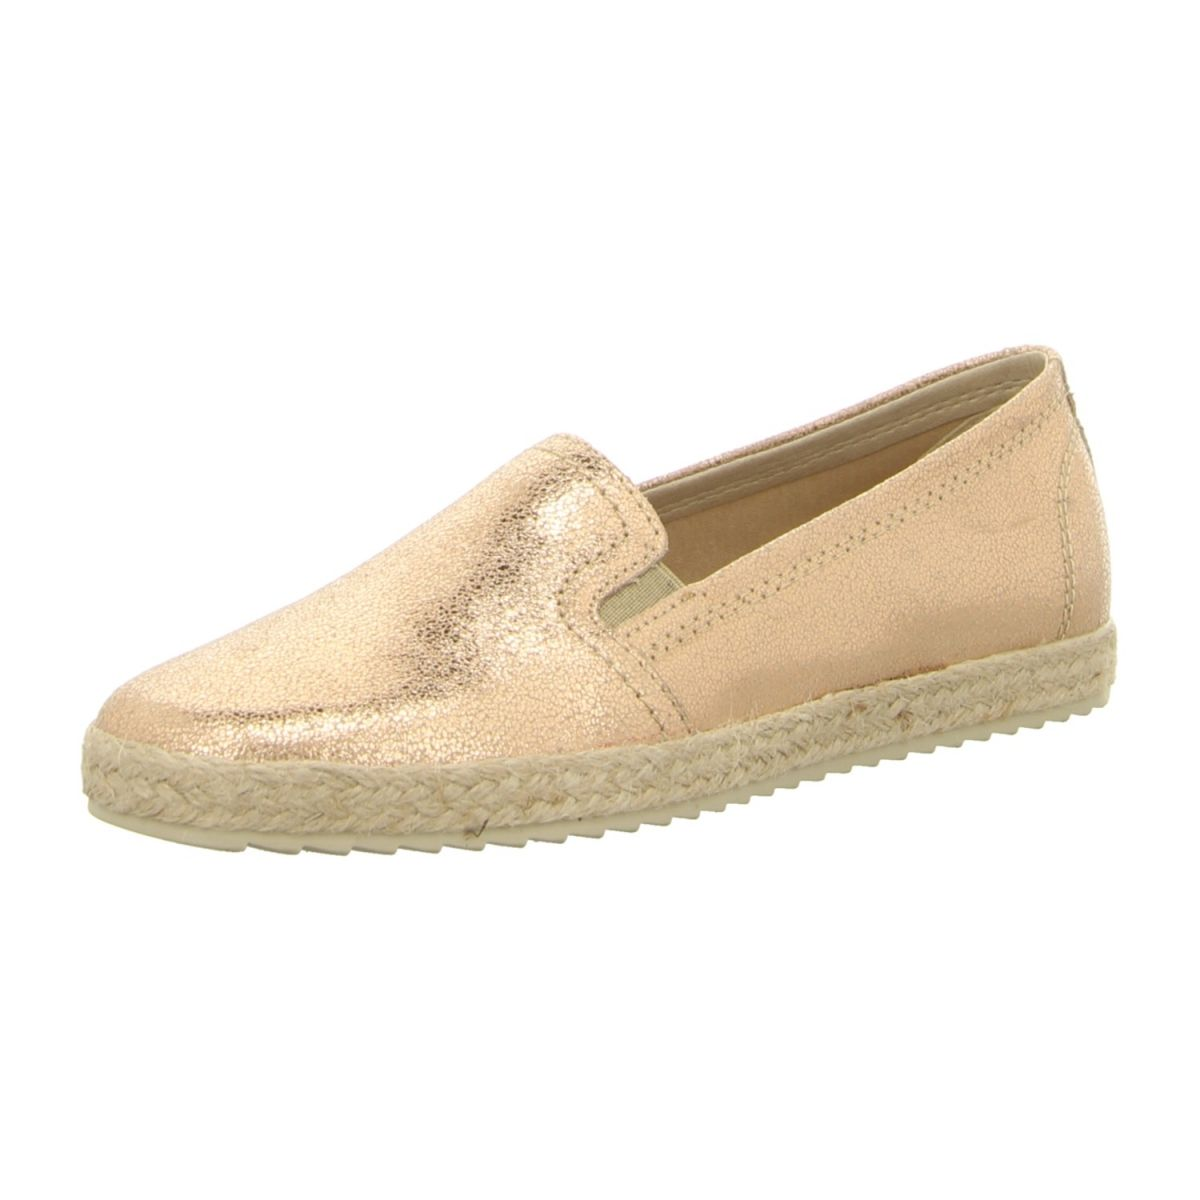 NEU: Tamaris Slipper 1 1 24644 28 952 rose metallic